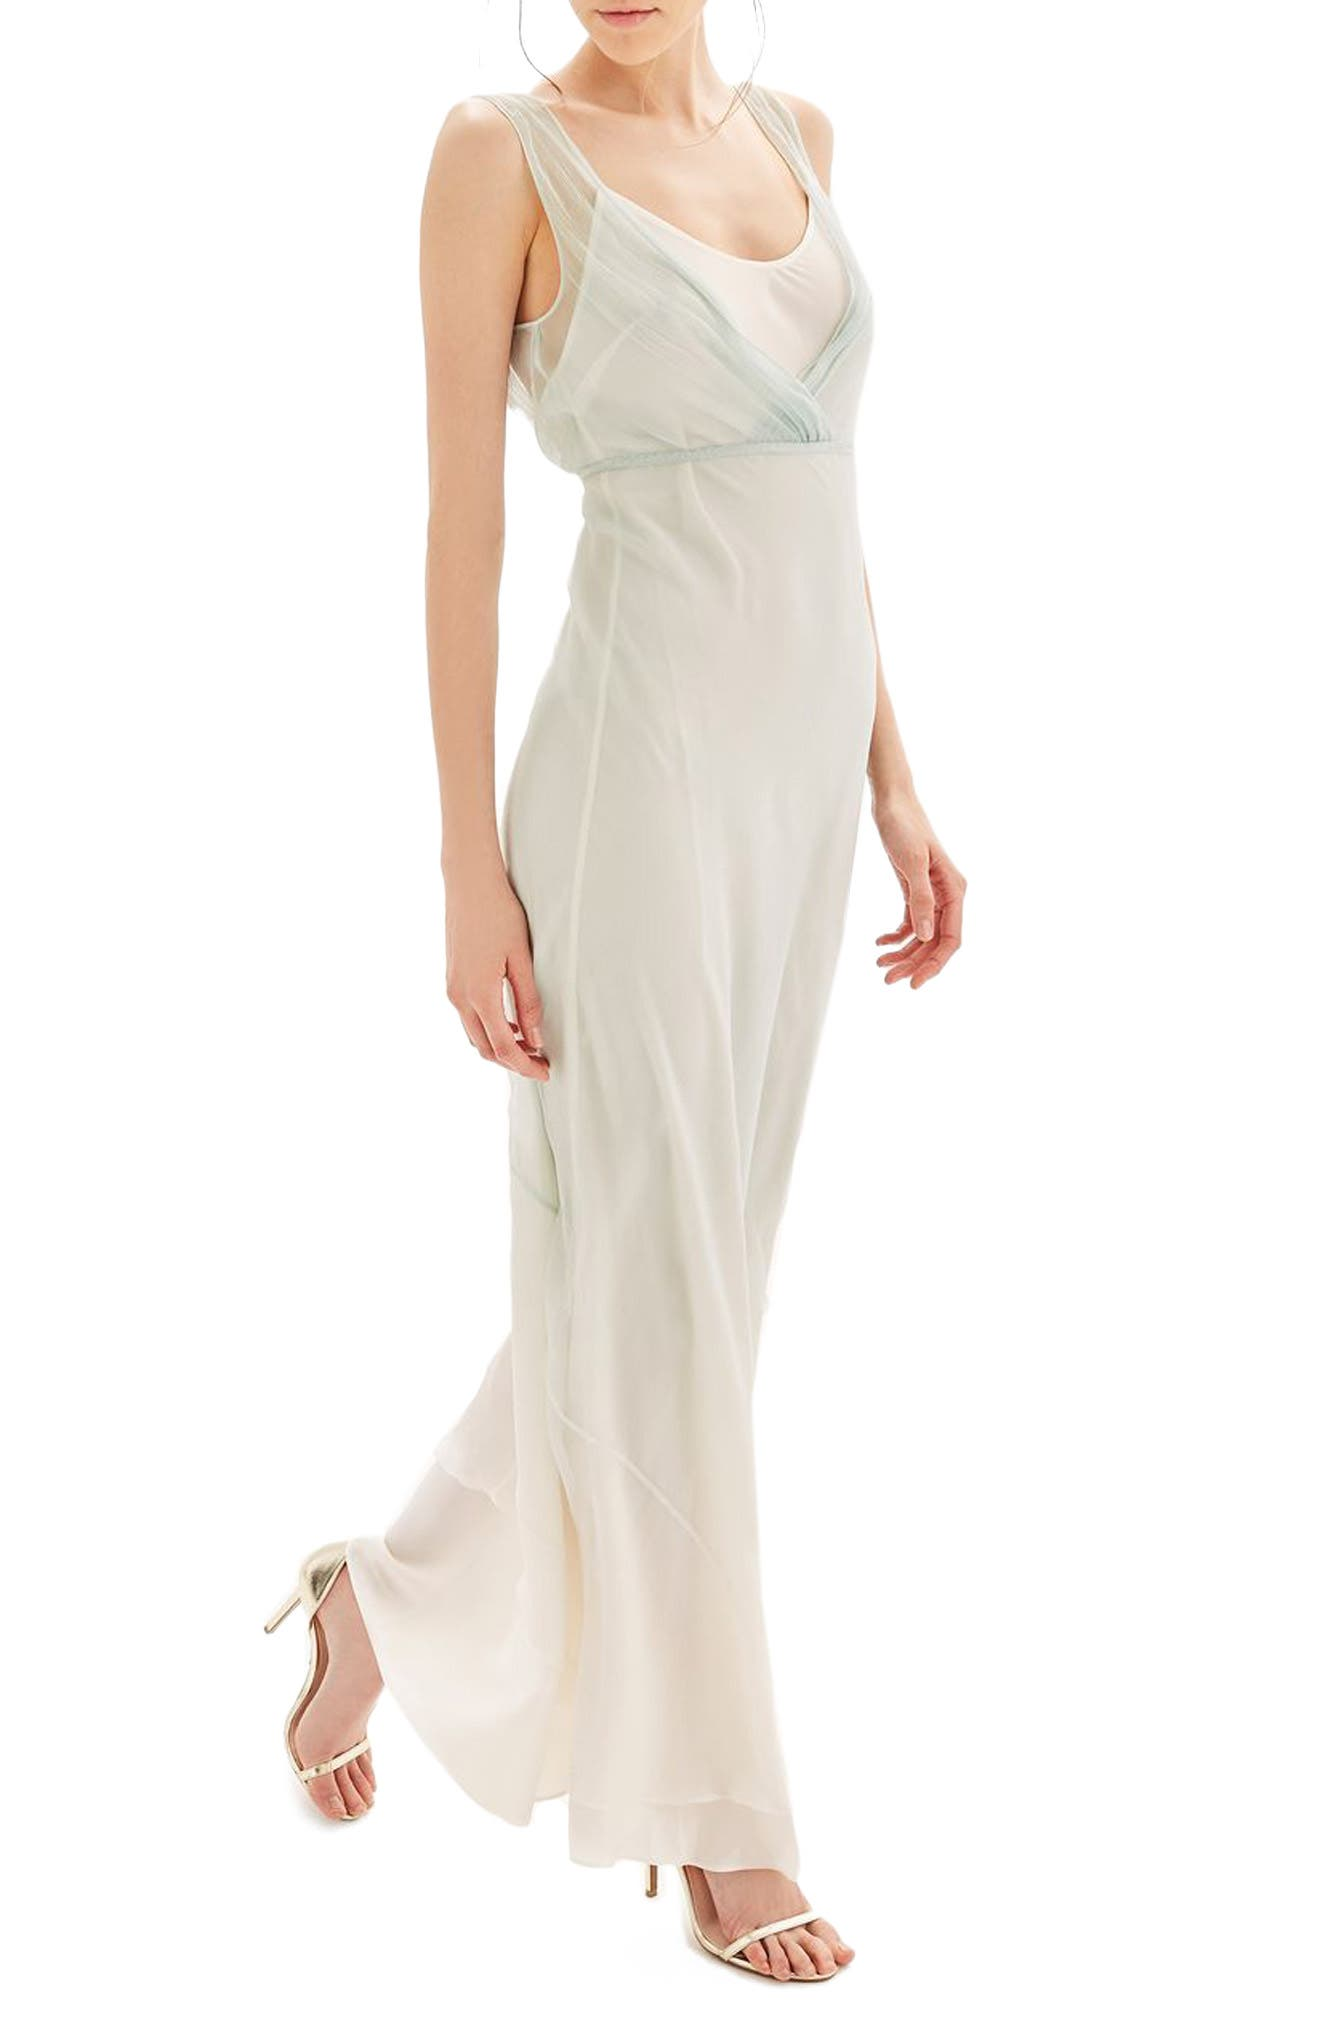 Topshop Bride Column Gown